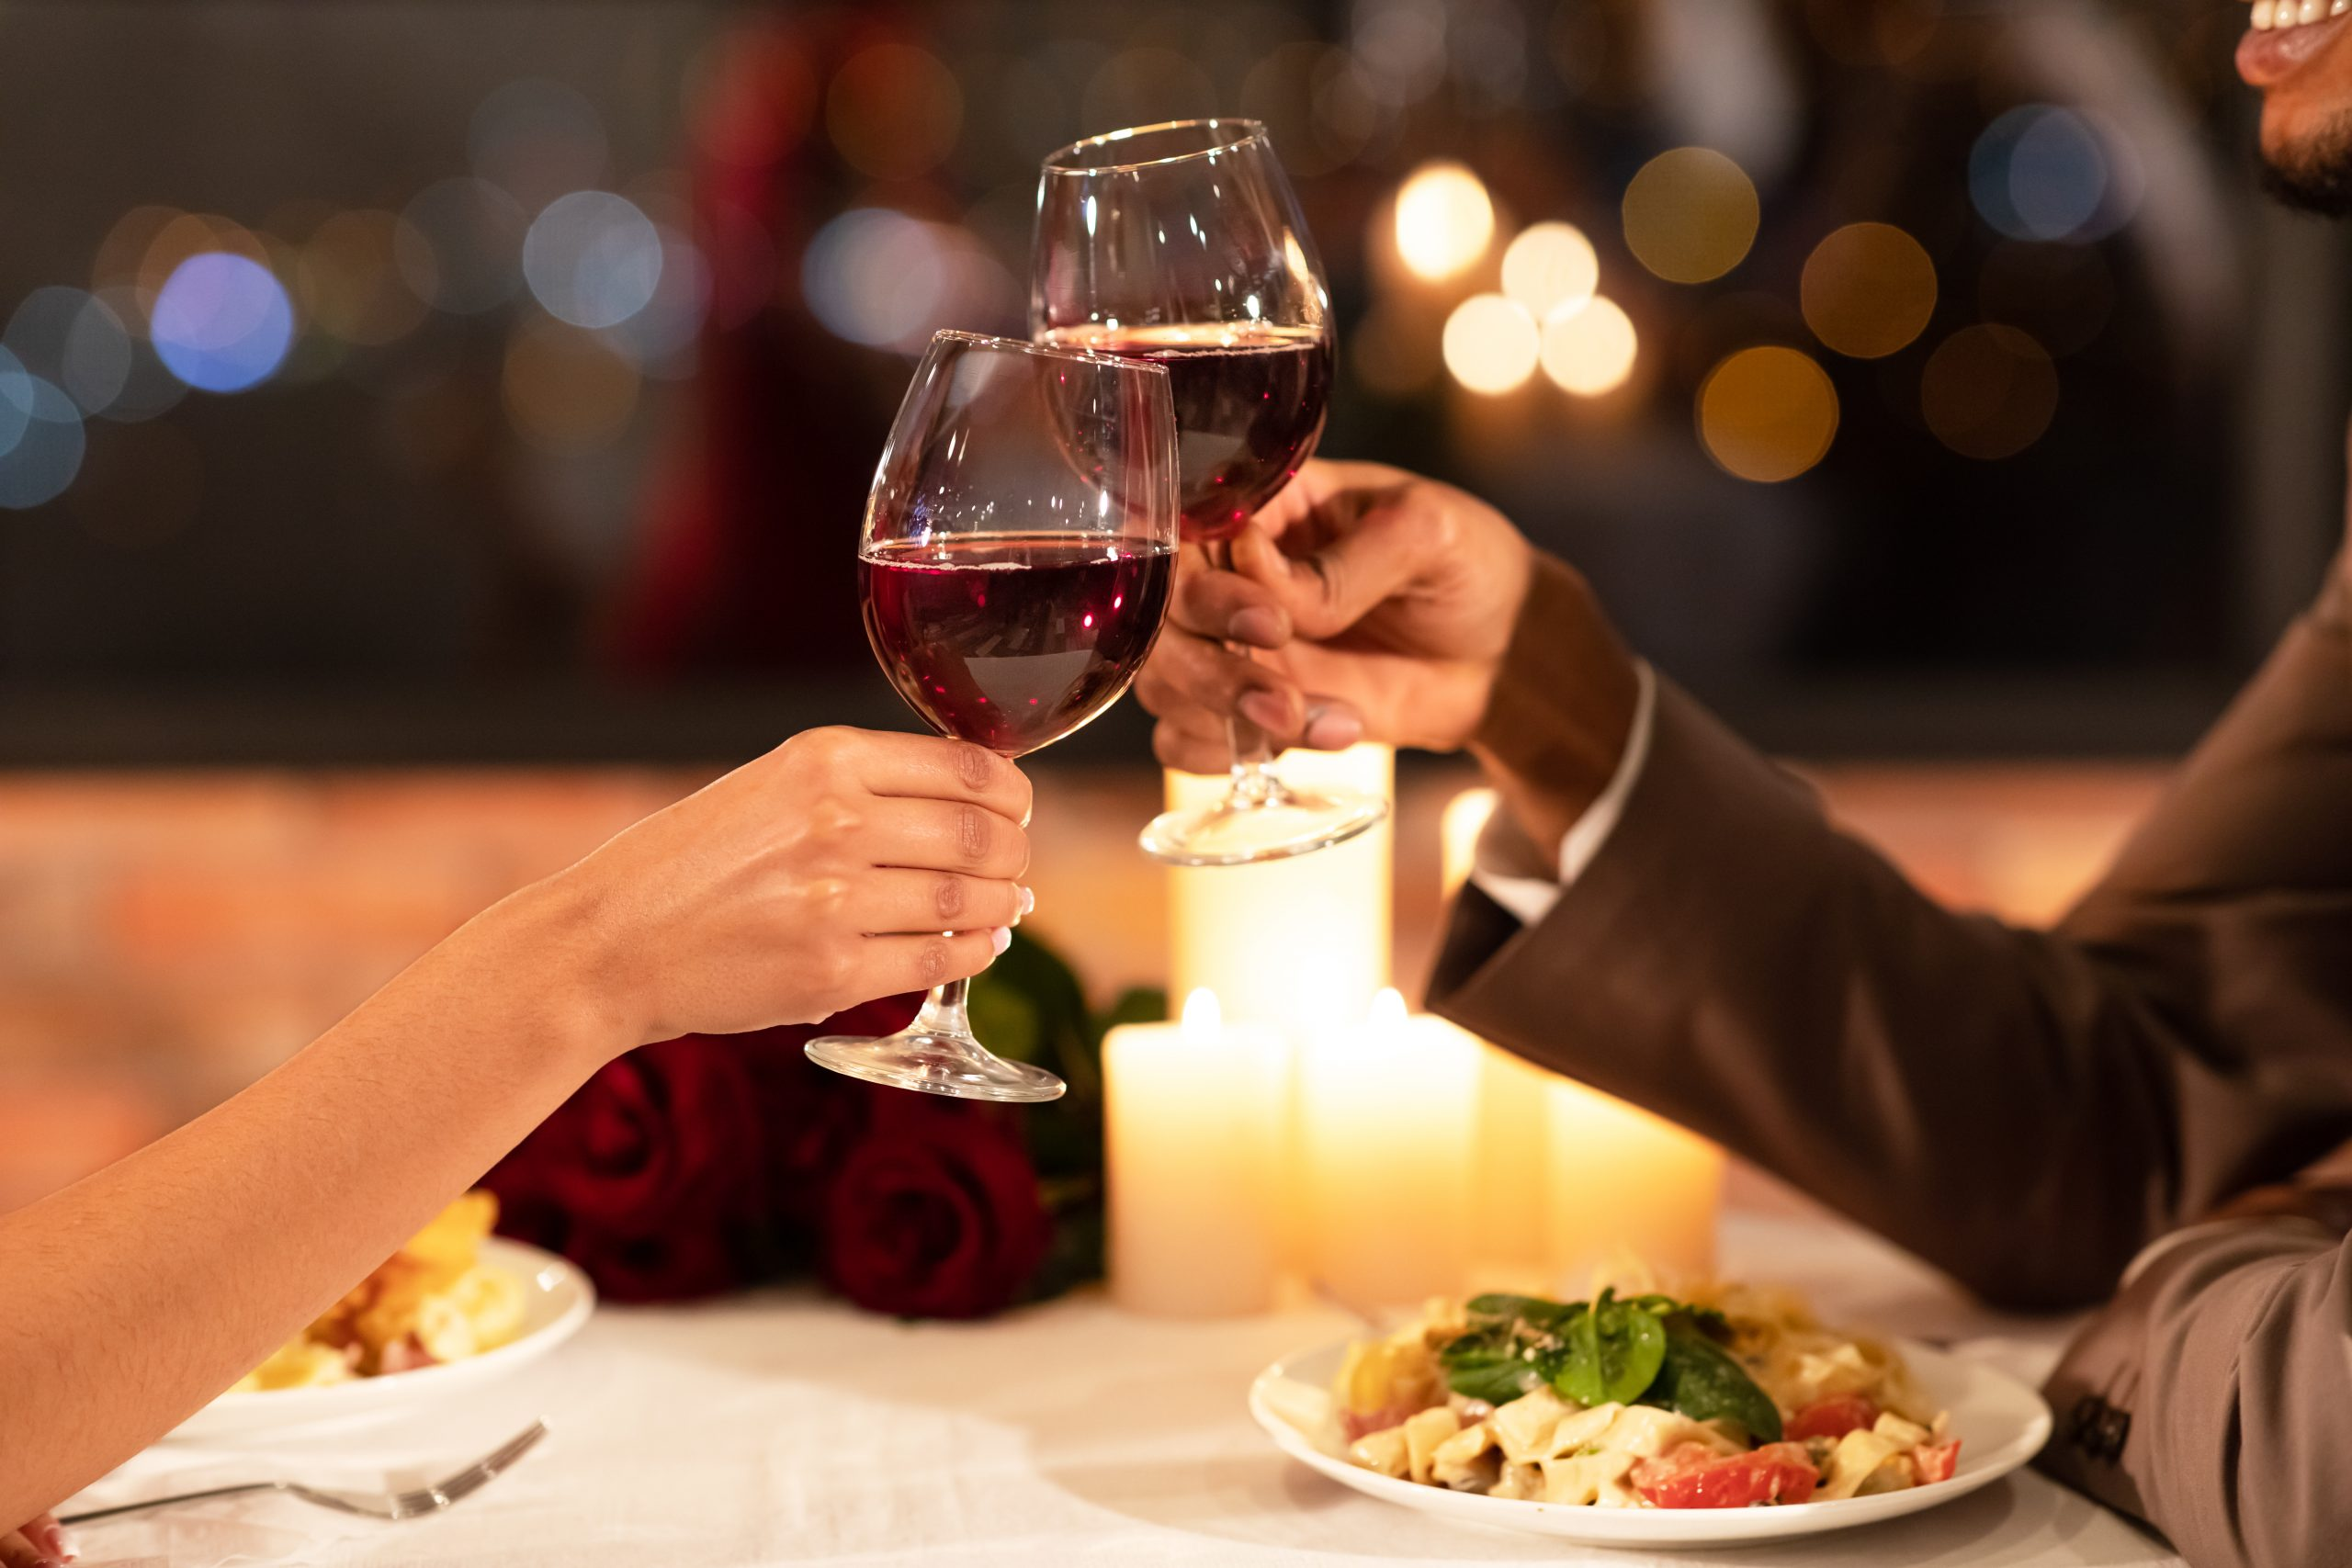 Couple's Hands Clinking Glasses Of Red Wine Dating In Restaurant